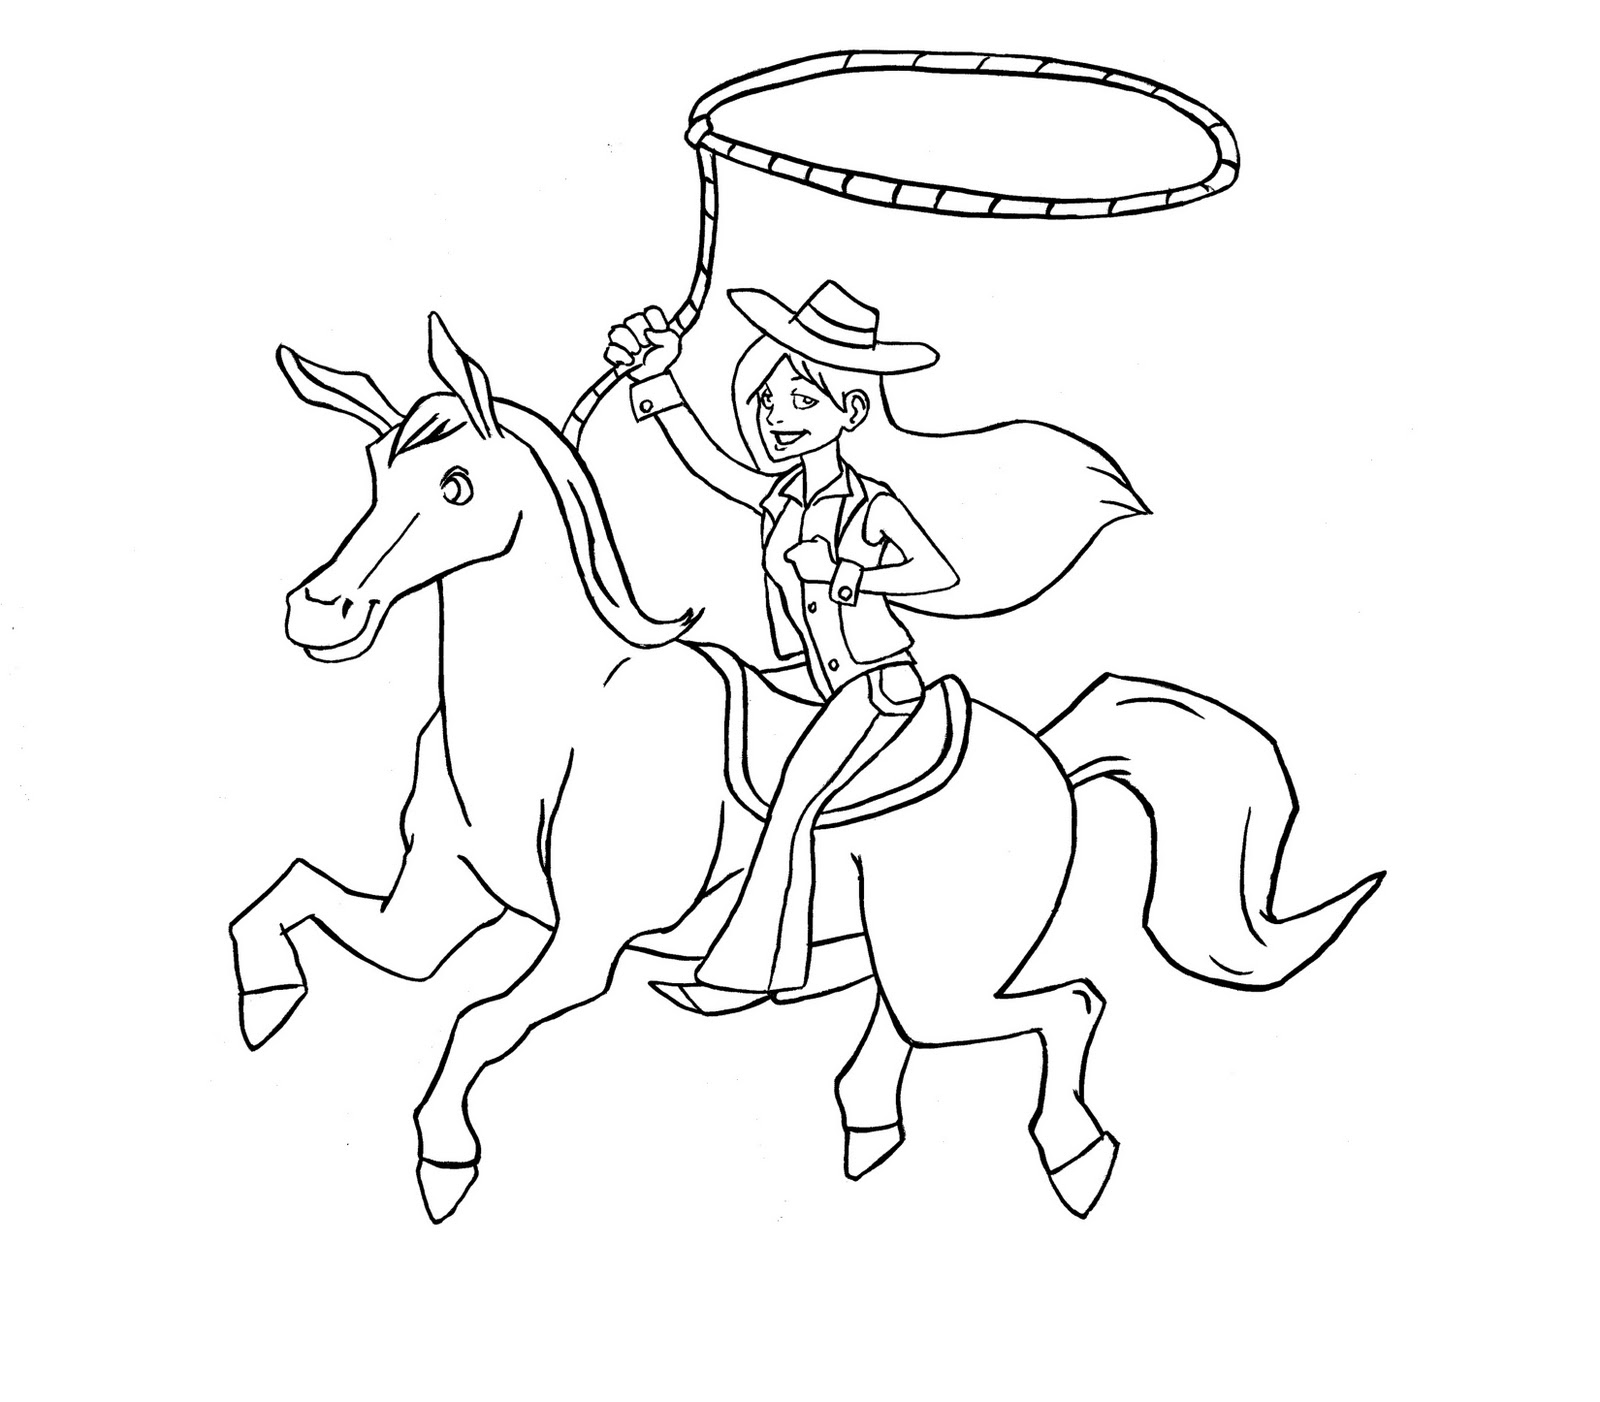 The Best Free Cowgirl Drawing Images Download From 139